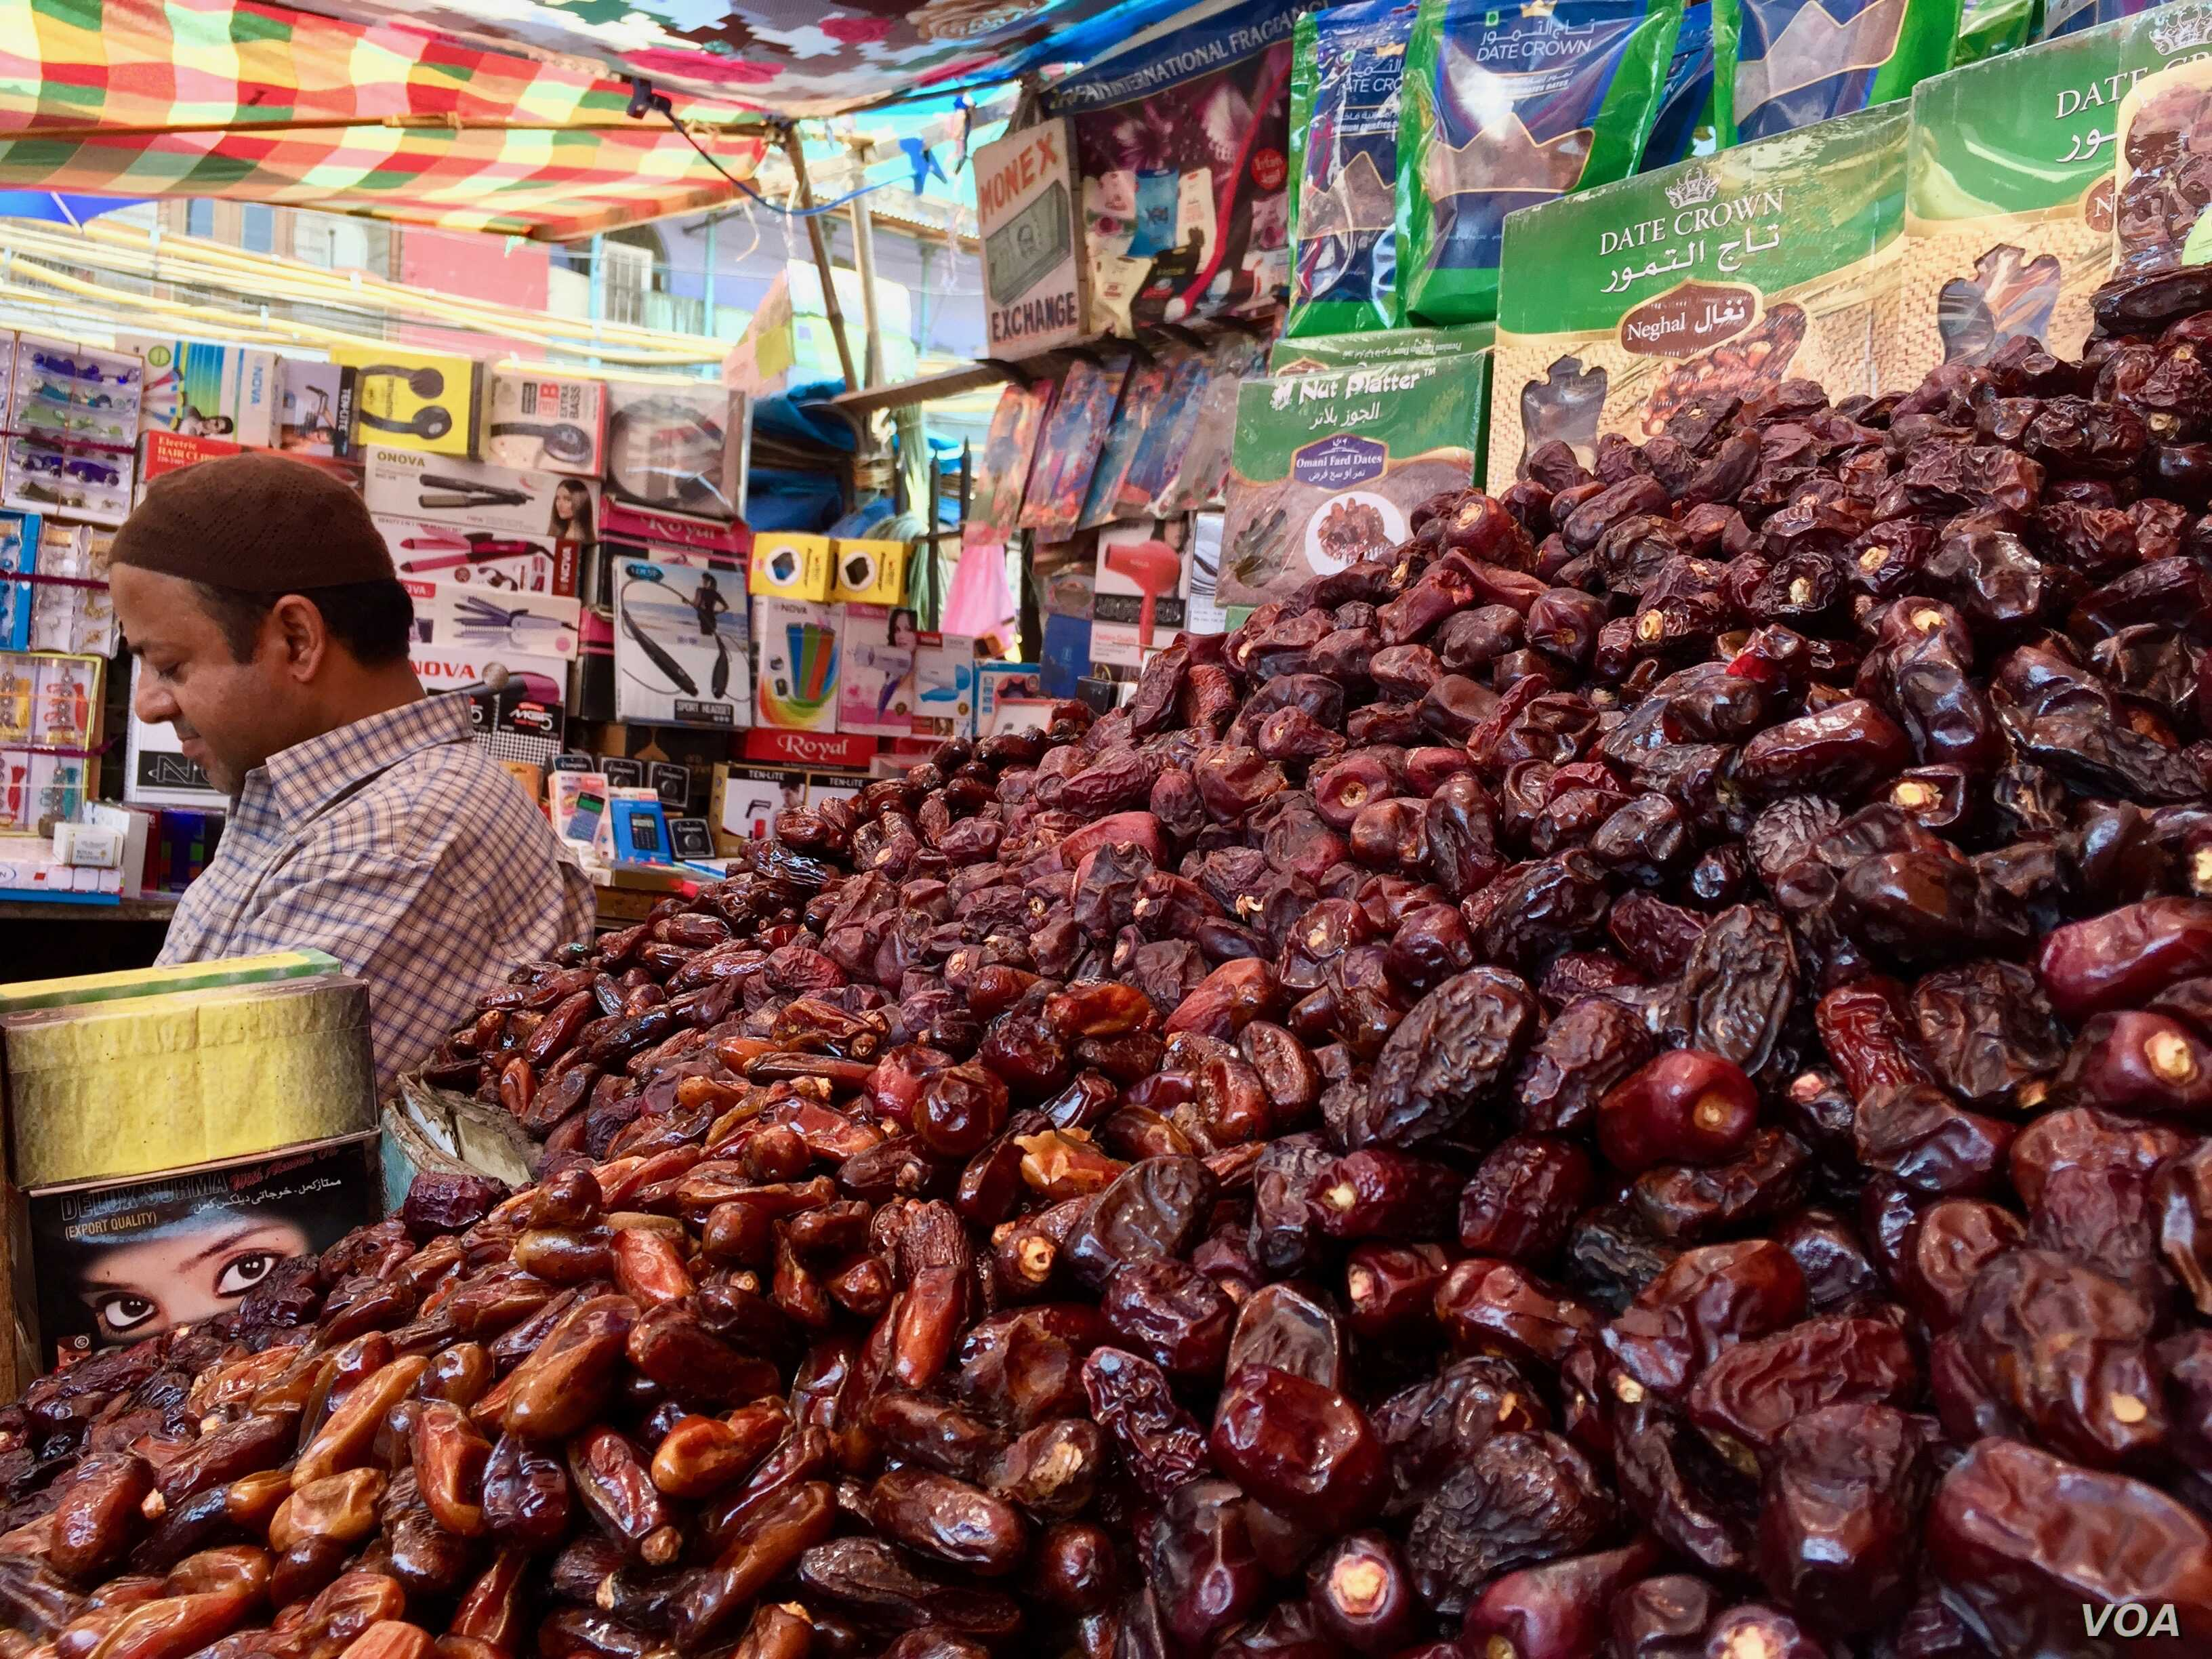 Vendor selling dates and traditional food items at a market in a Muslim dominated neighborhood in Delhi.